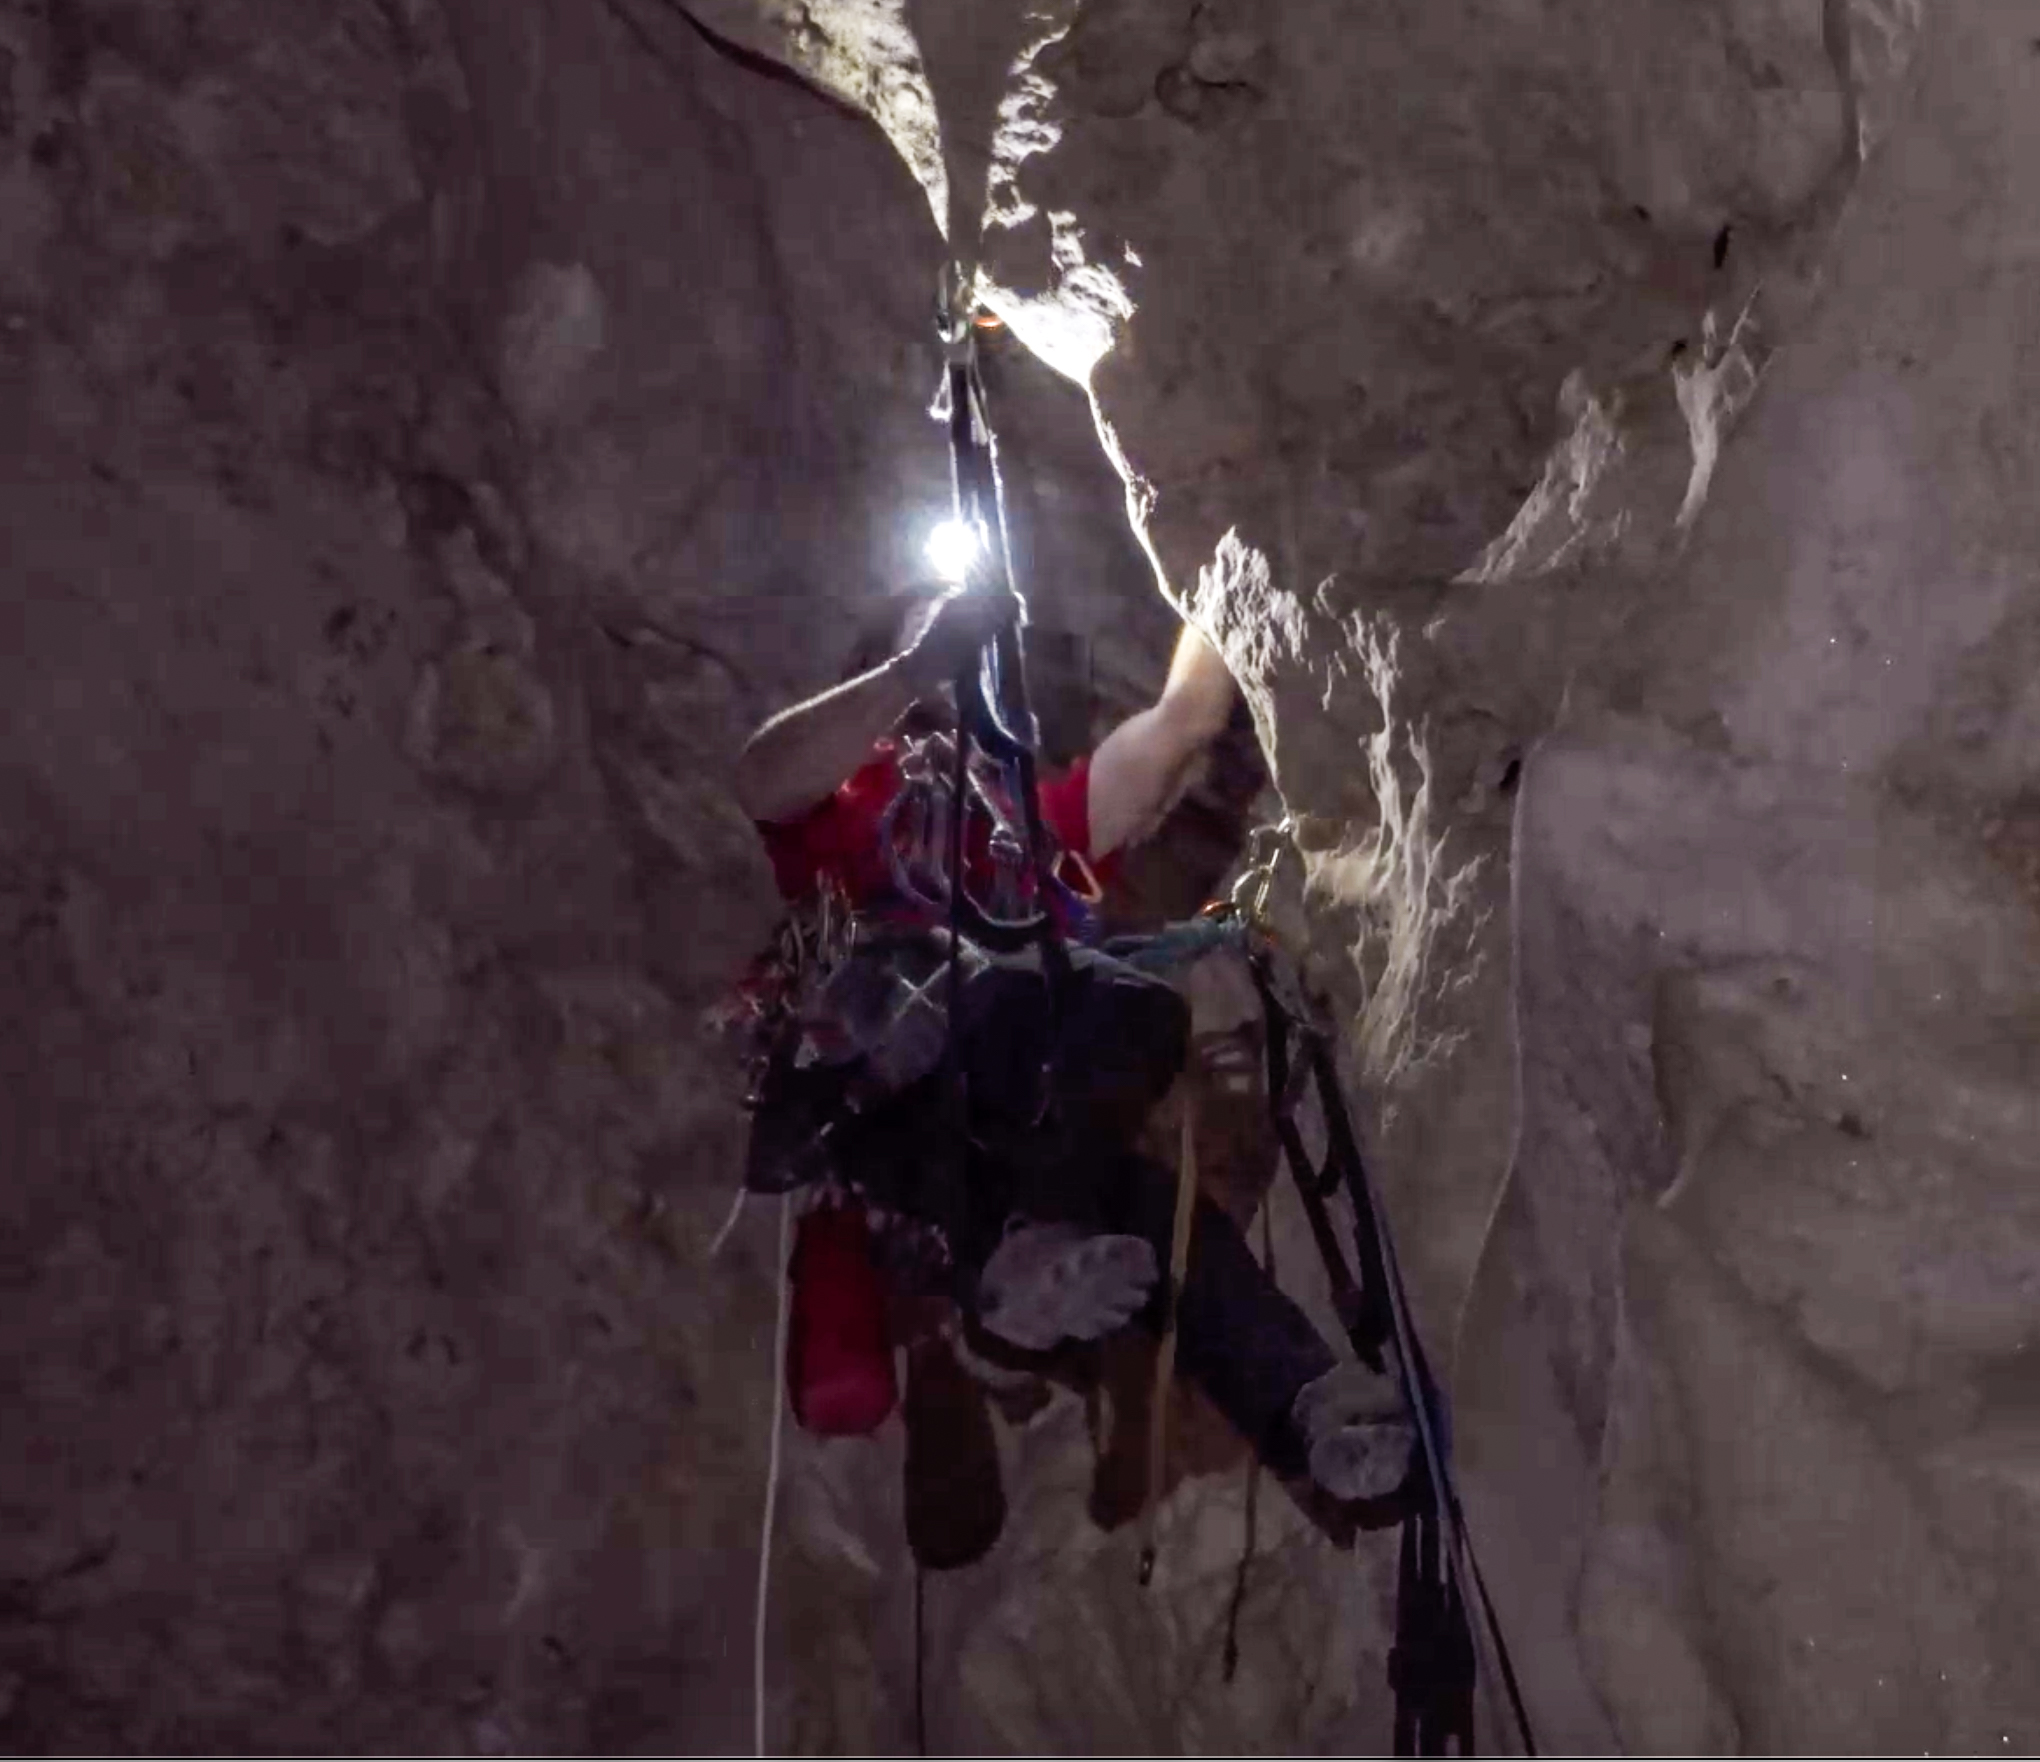 climbing - One of the greatest technical challenges in cave exploration is lead-climbing. The equipment and techniques for aid climbing underground have evolved in recent years to allow for faster, safer and lower impact ascents.